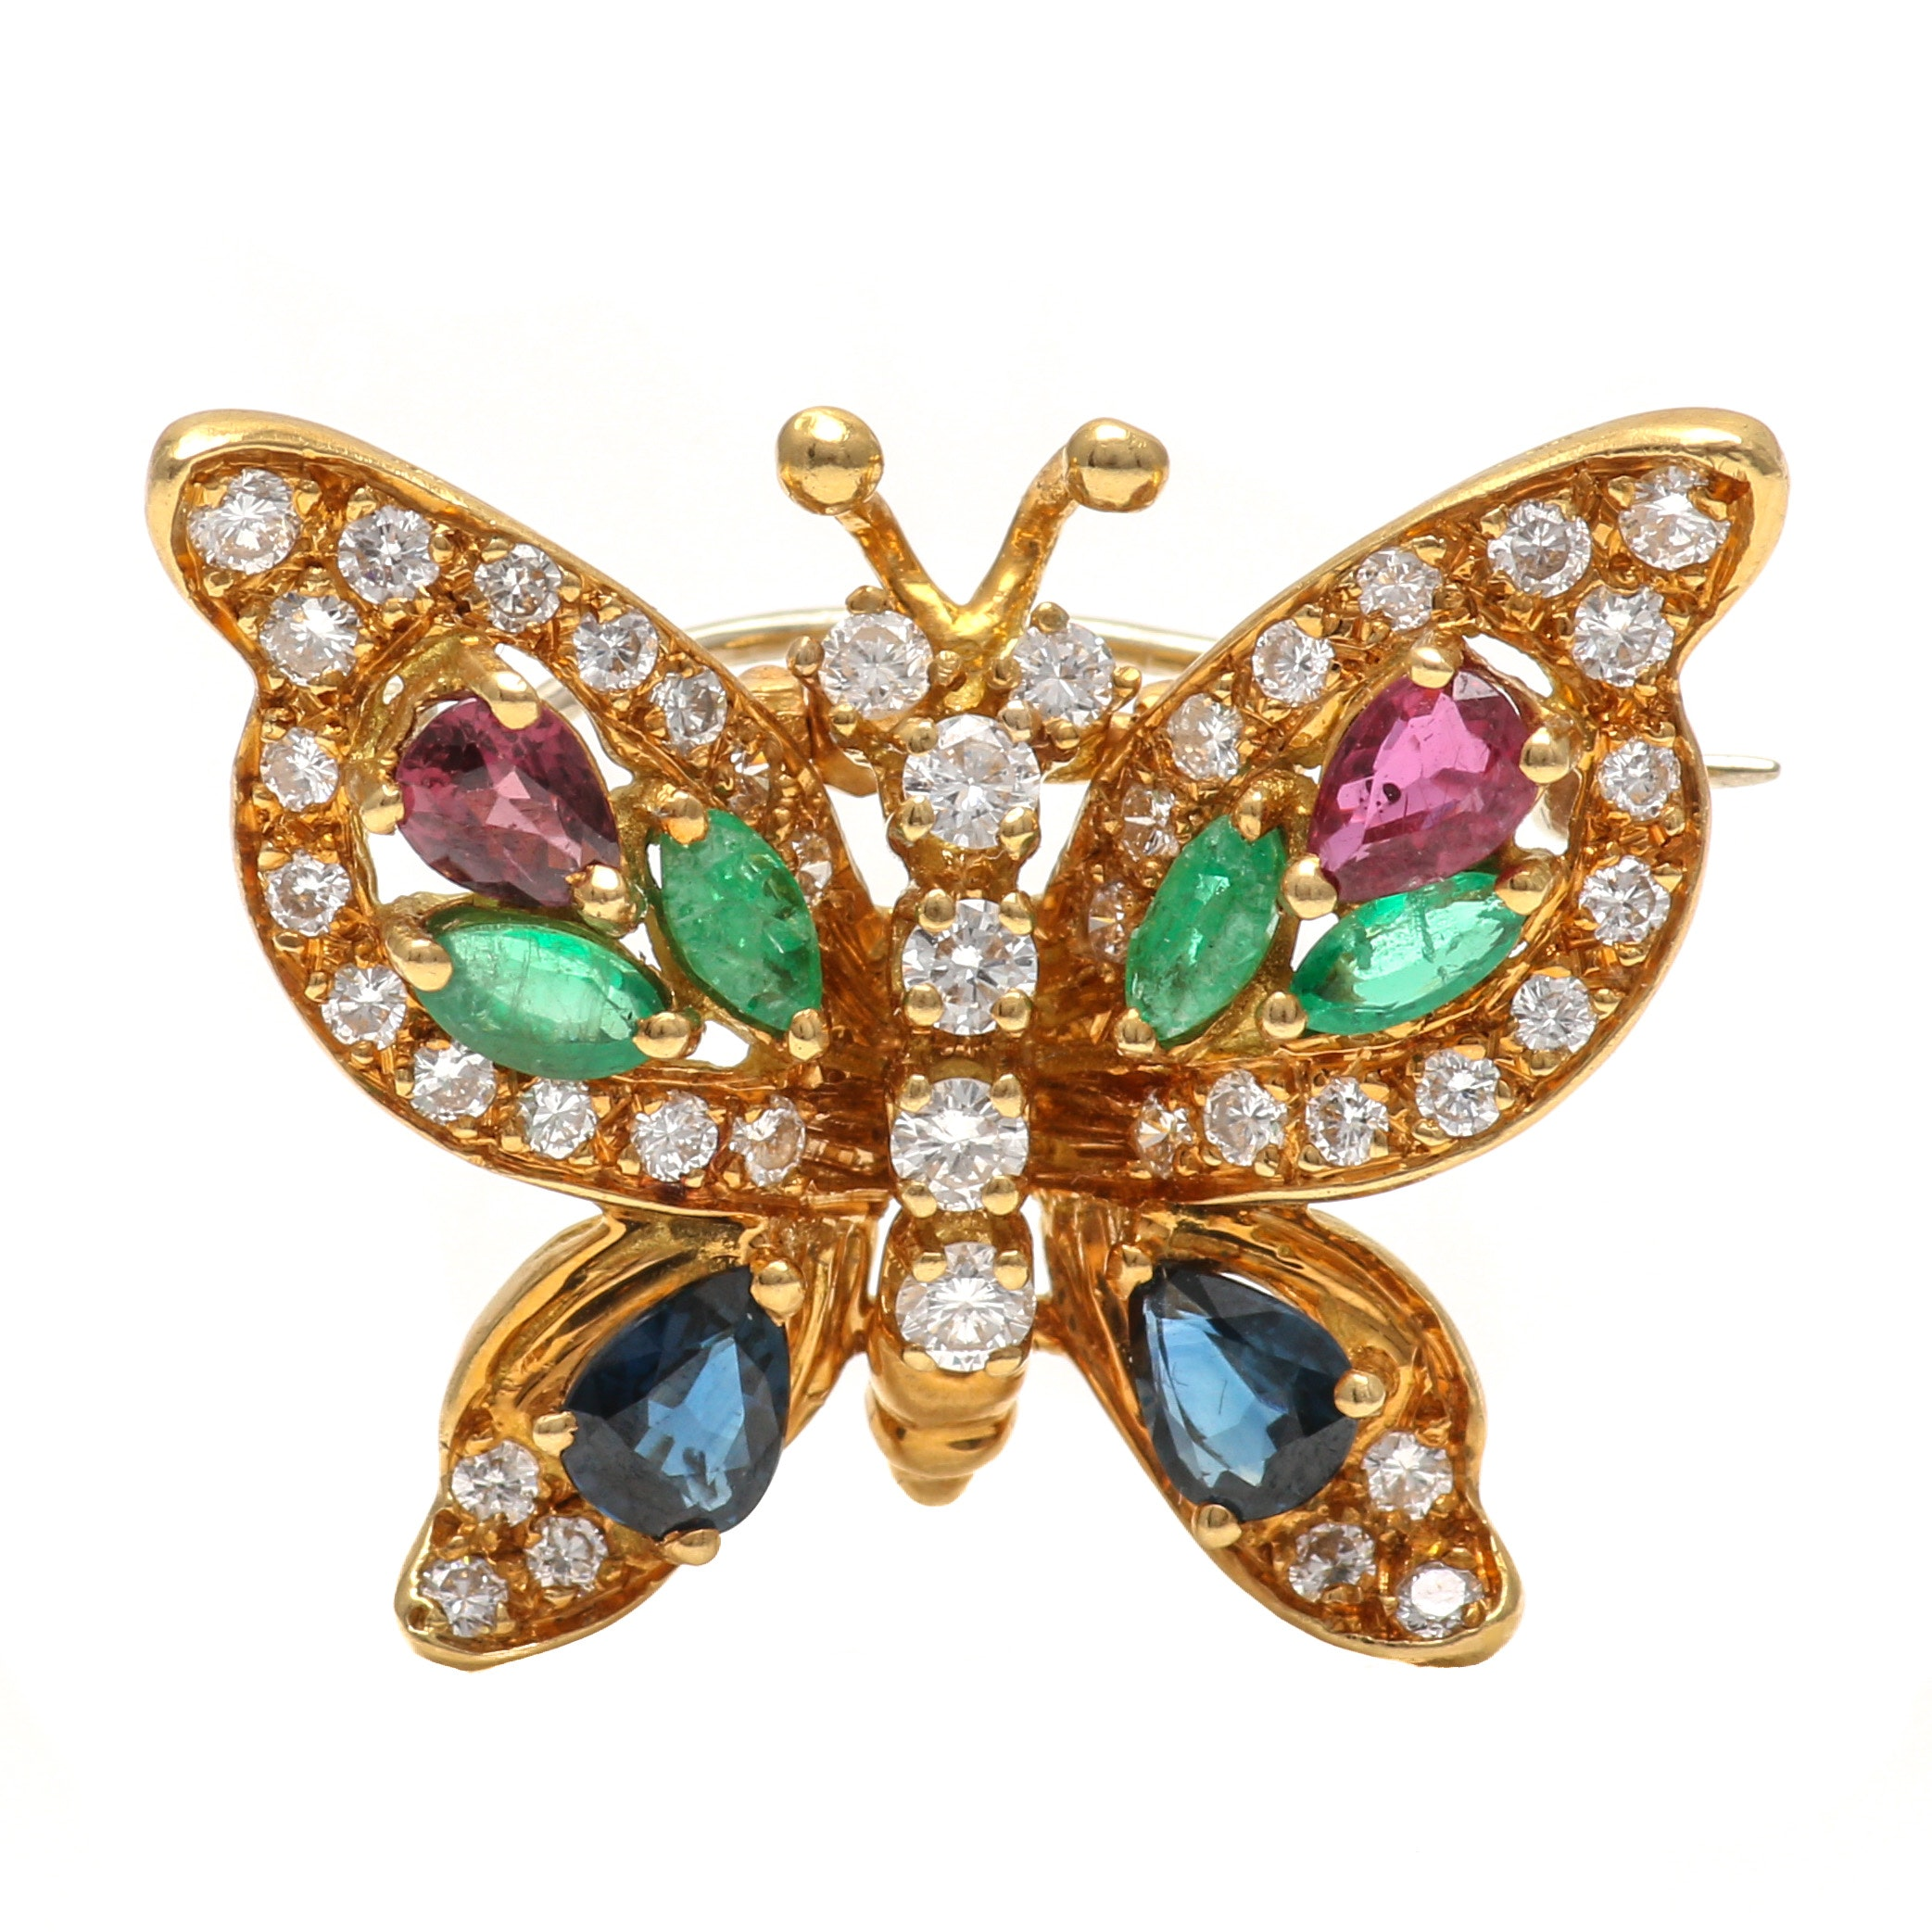 18K Yellow Gold 1.10 CT Diamond and Gemstone Butterfly Brooch